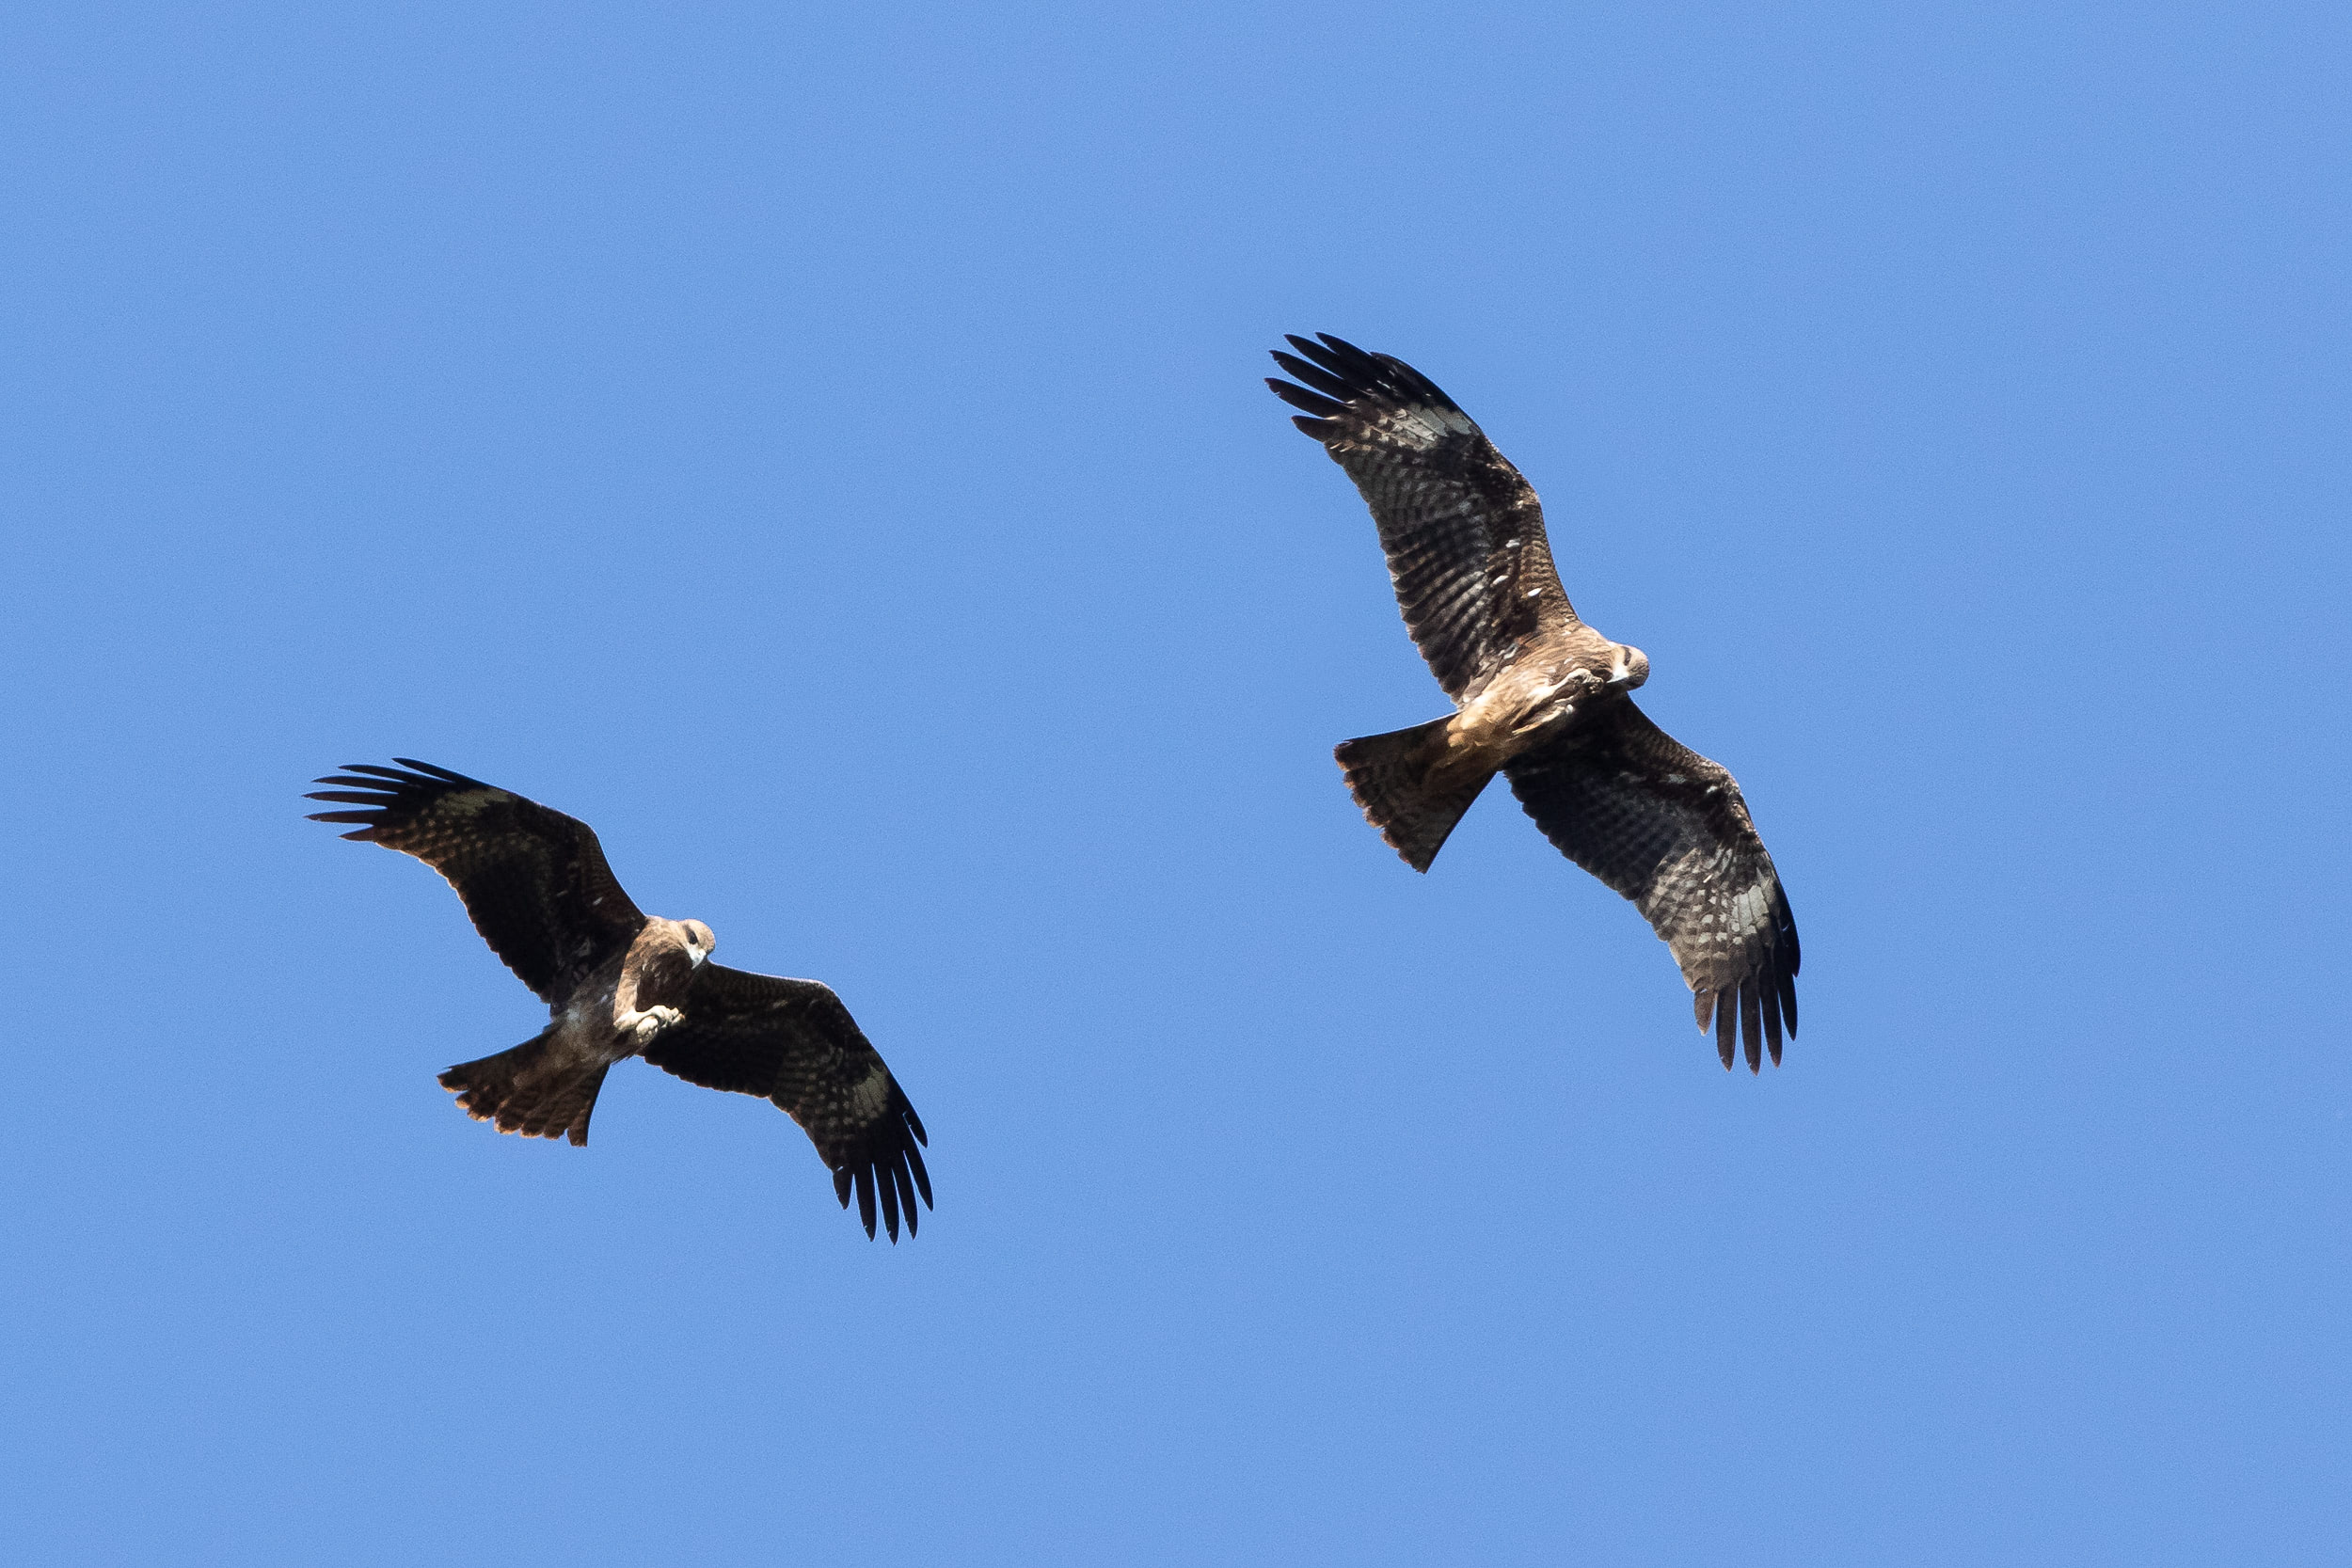 Black Kites having lunch in the air. Photo by Diego Jansen.